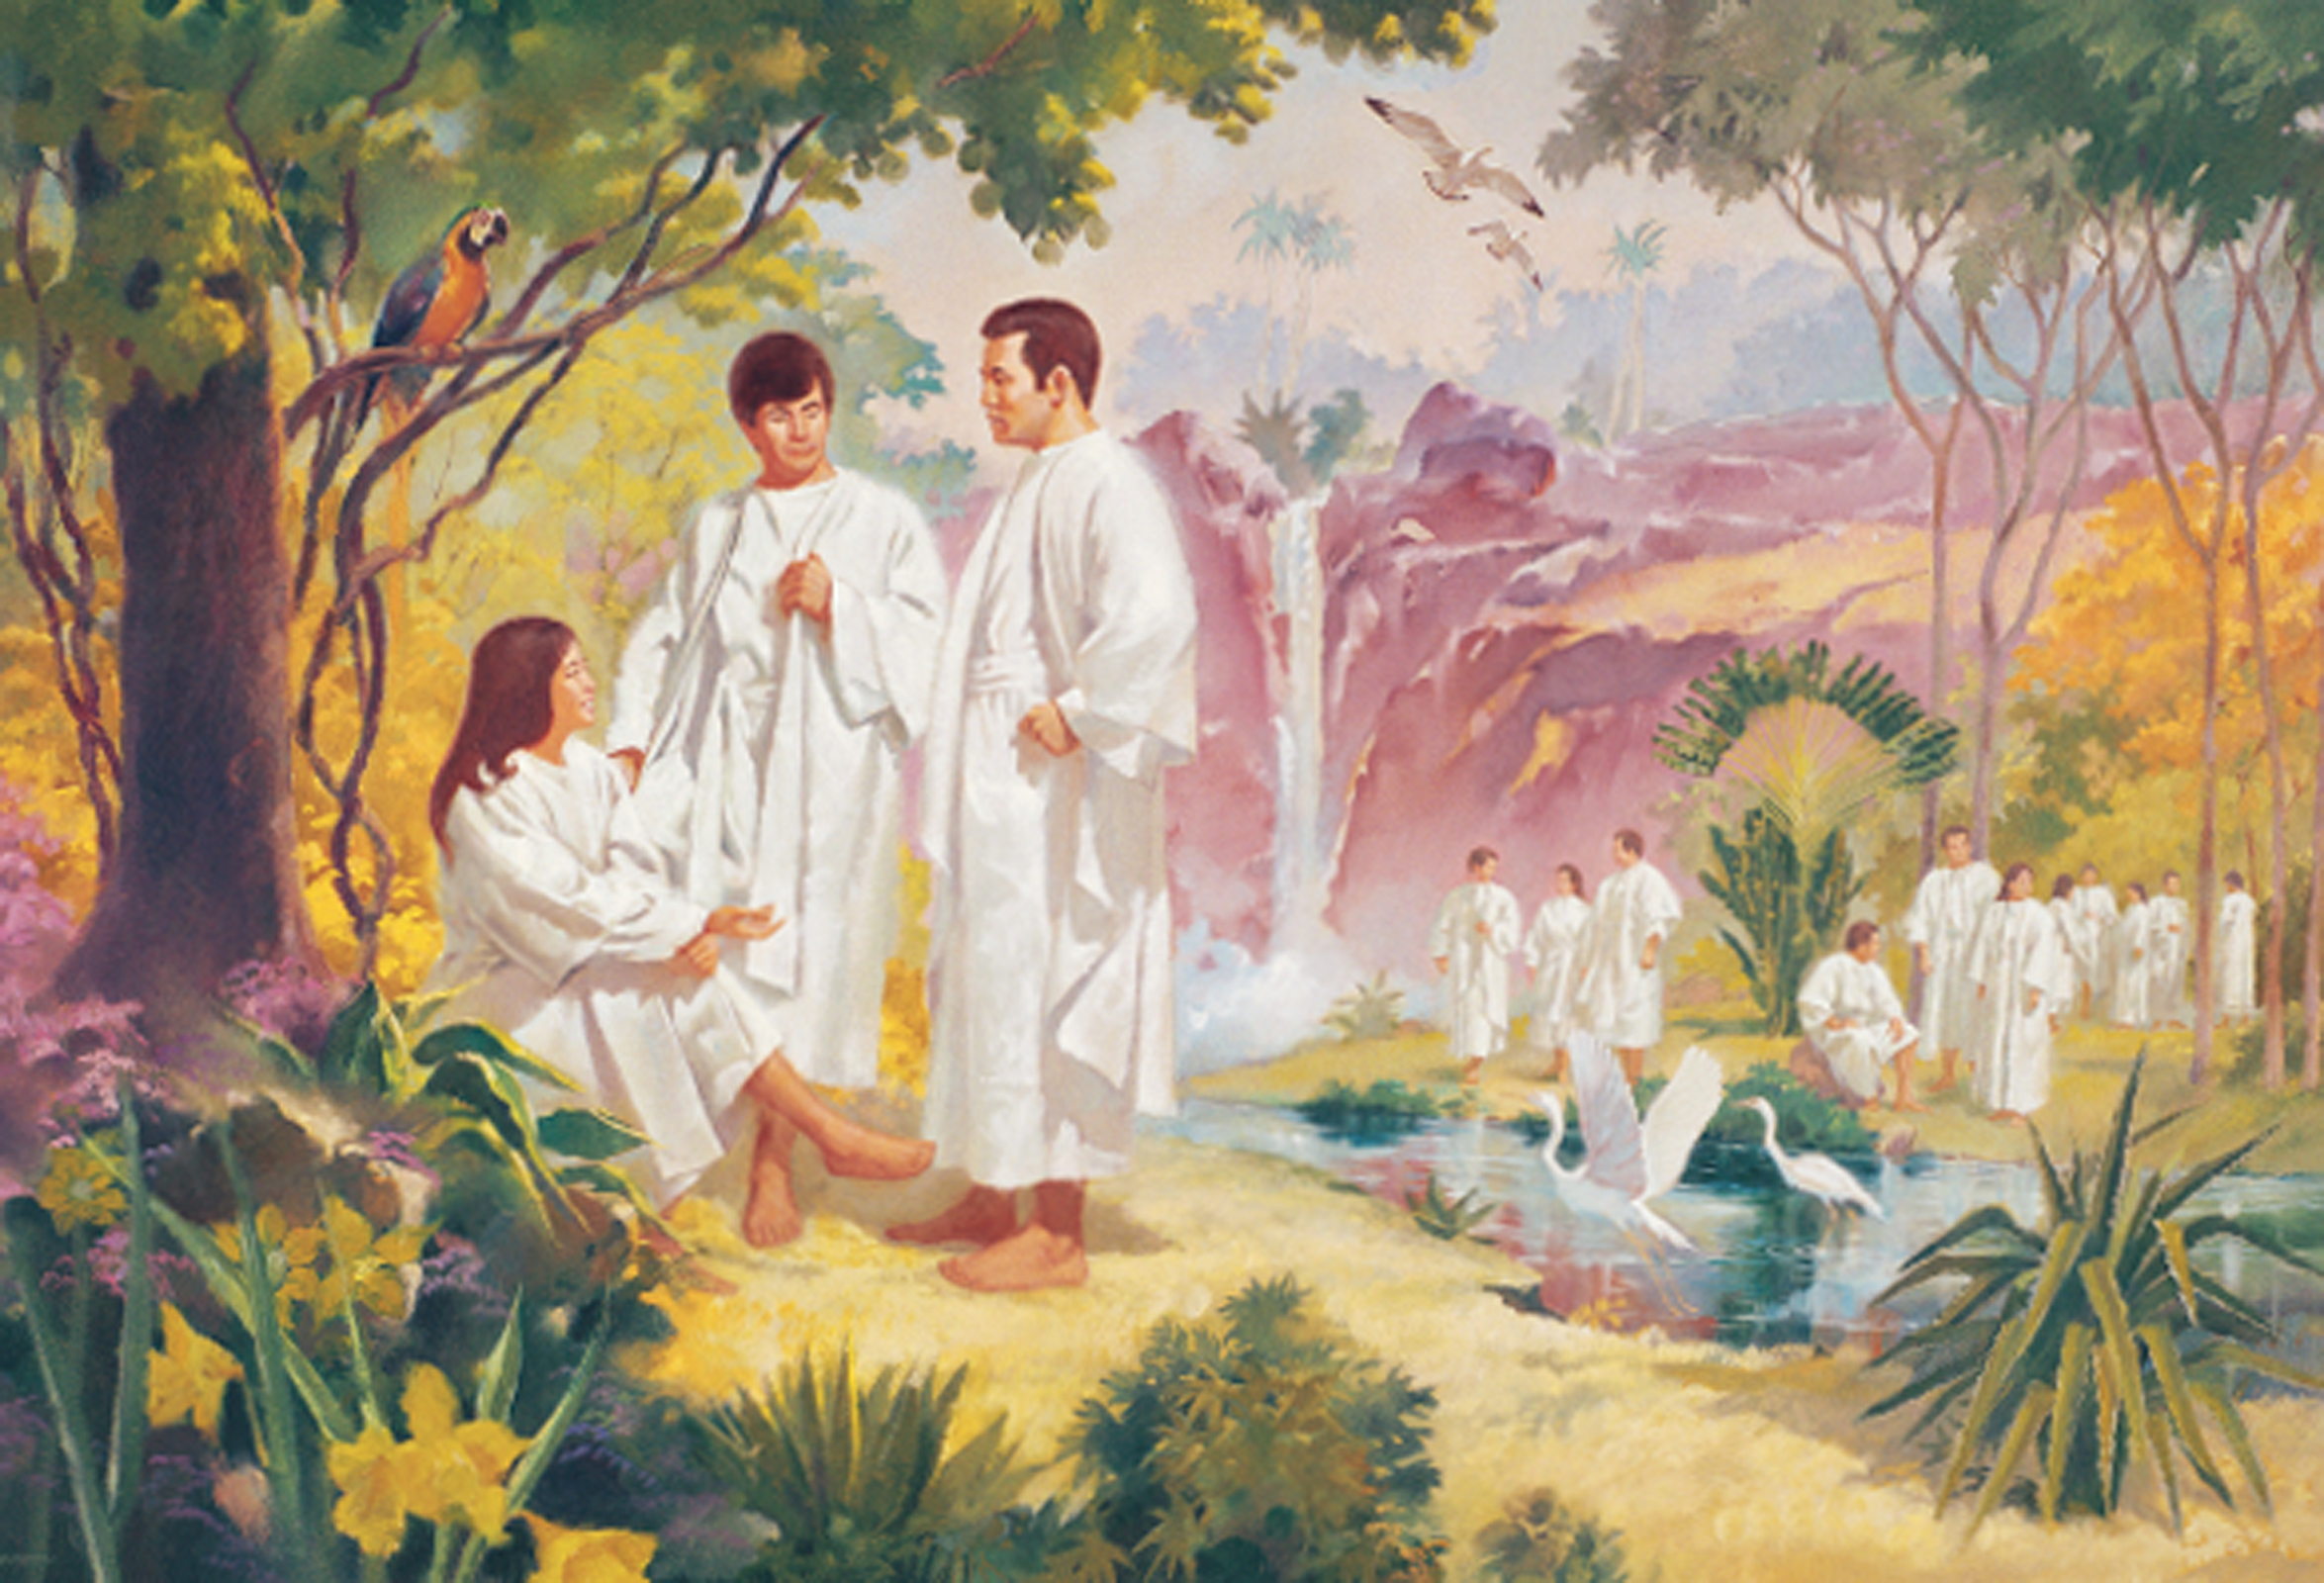 Pre-existence-people-white-robes-153673-wallpaper